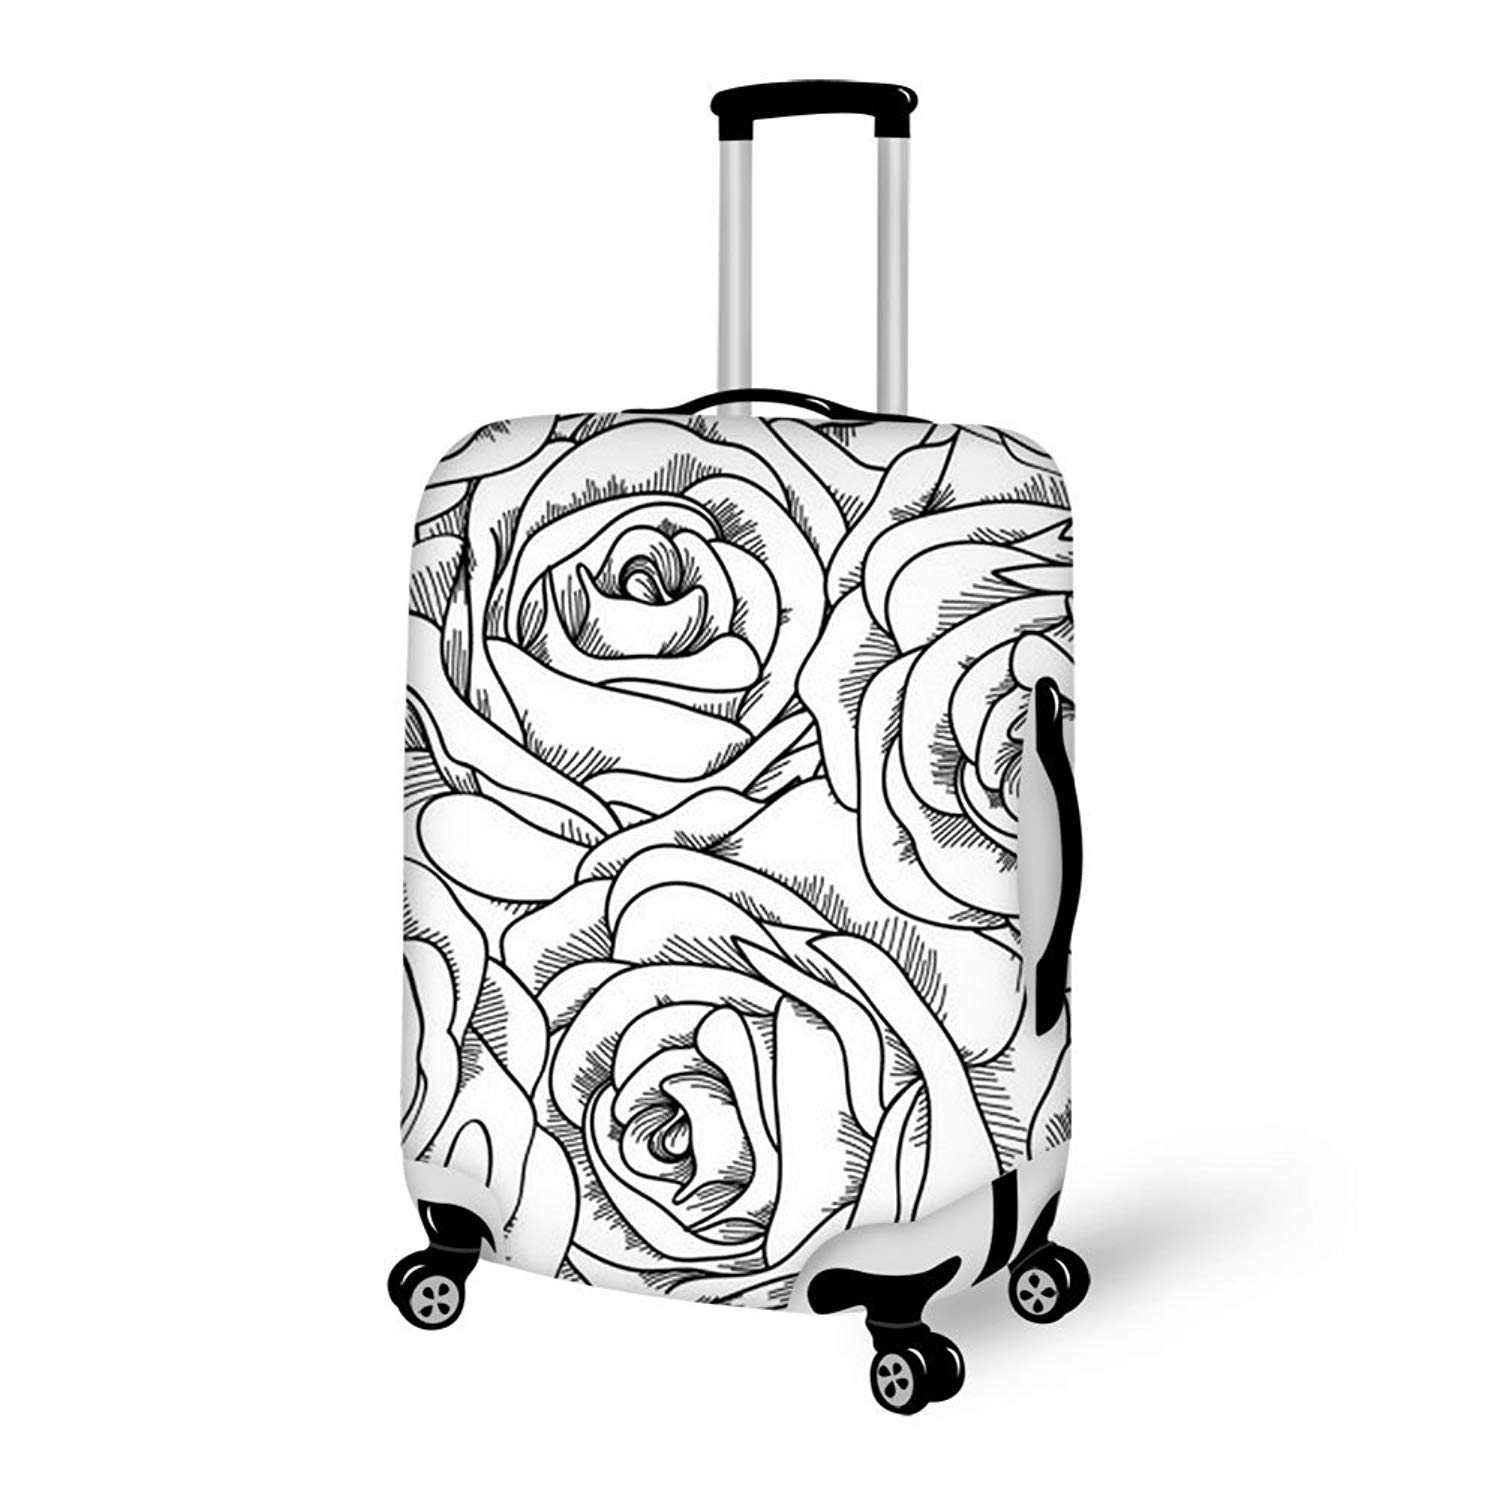 WAOWAO multicolor hardside luggage 24inch